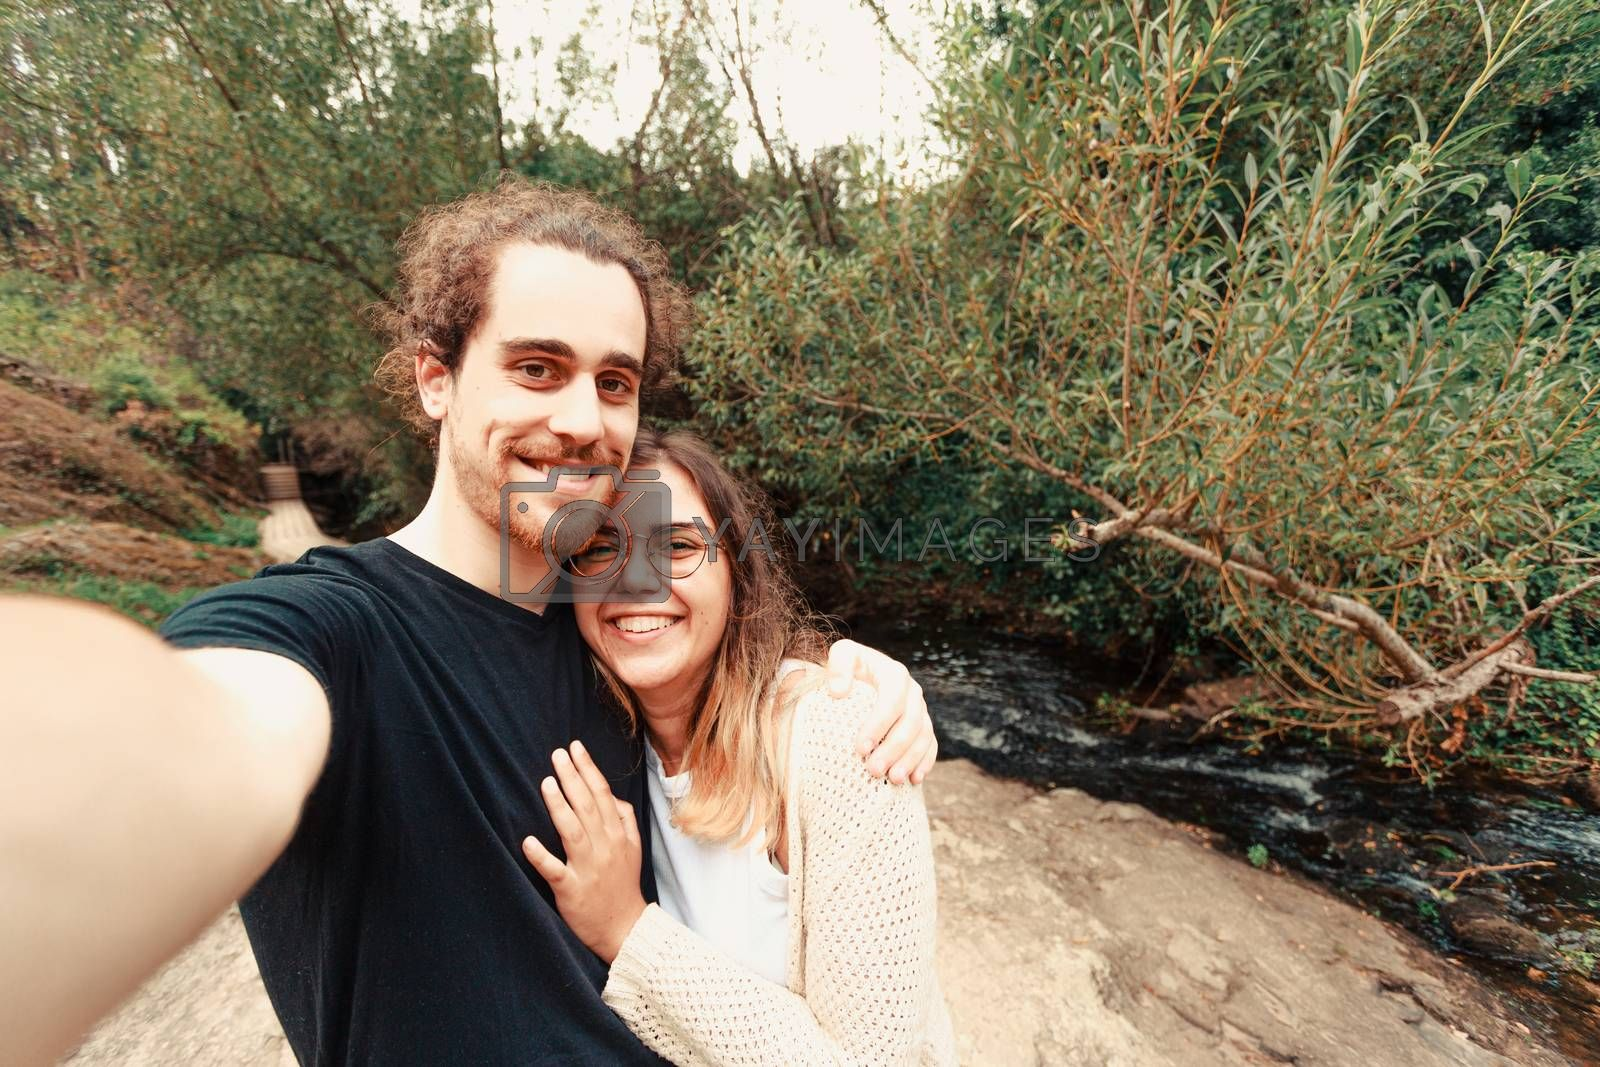 A young couple taking a selfie near a river in Spain